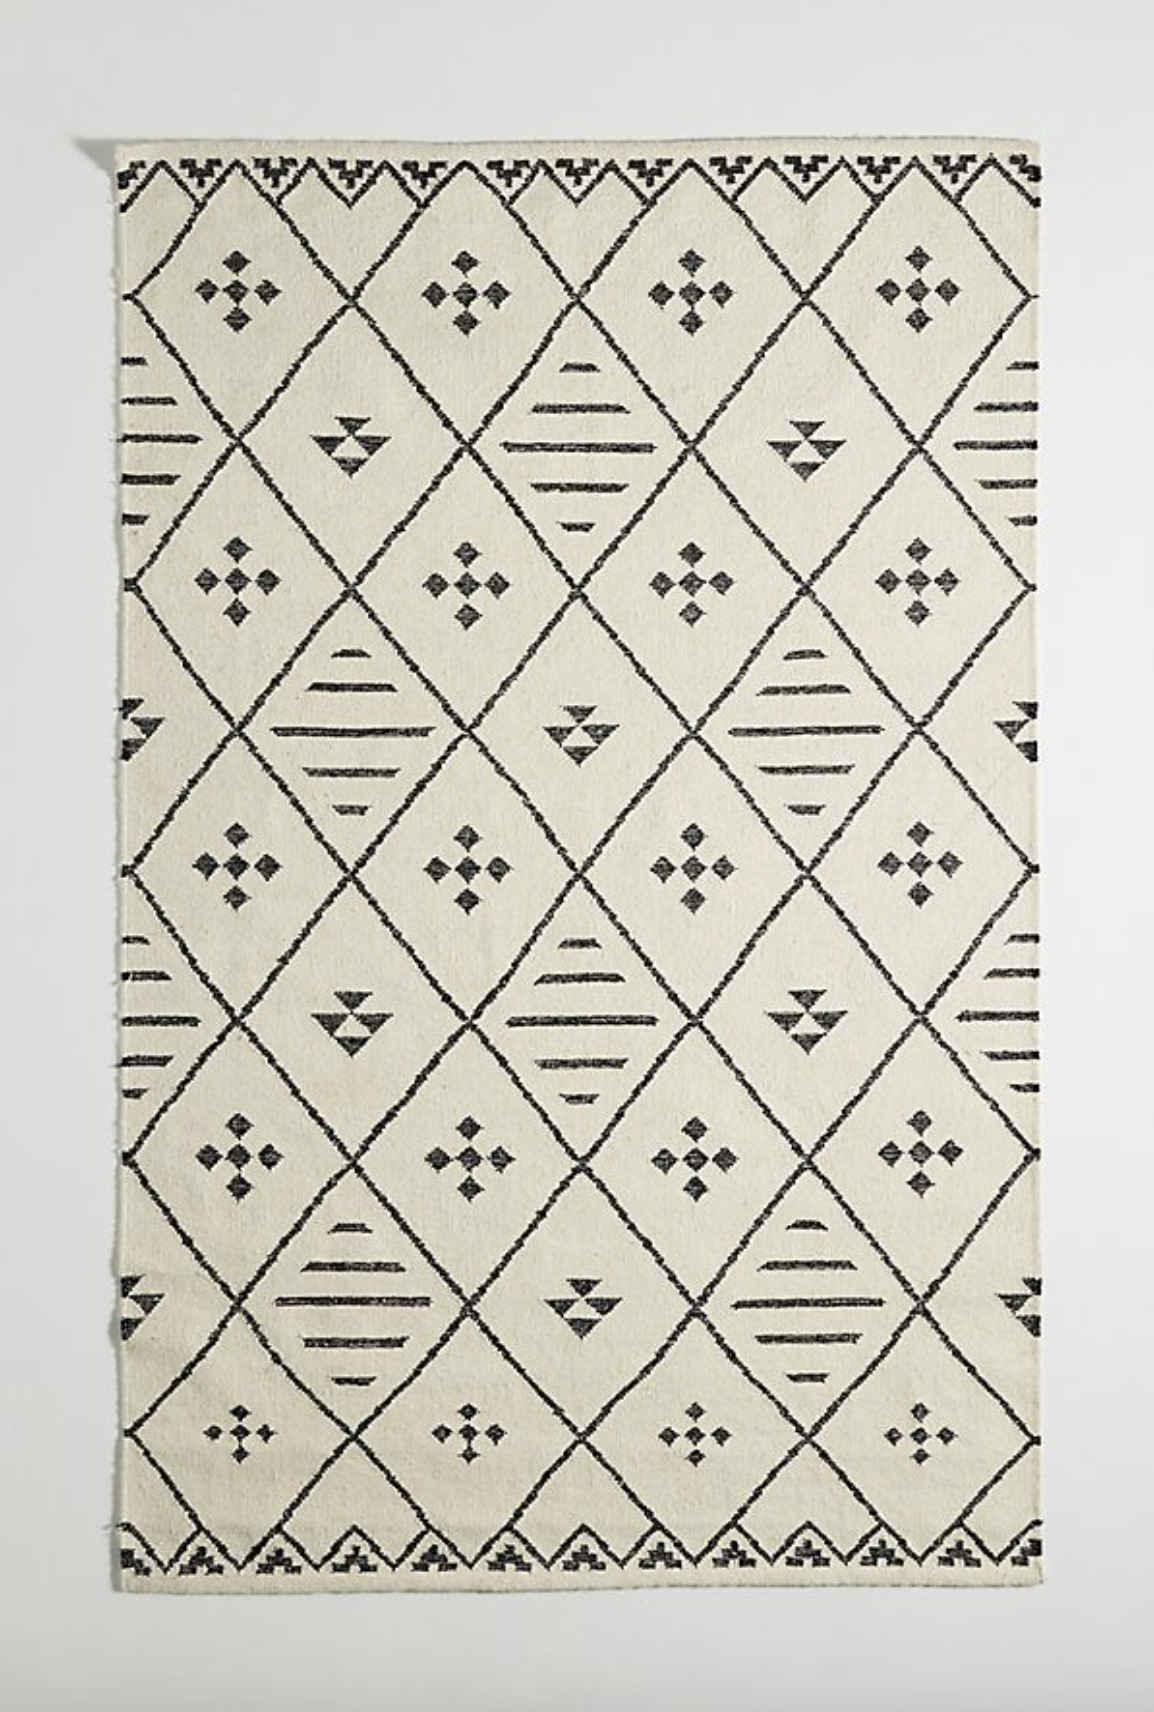 Photo courtesy of Anthropologie   Anthropologie Black and White Flatwoven Maylan Rug - $78